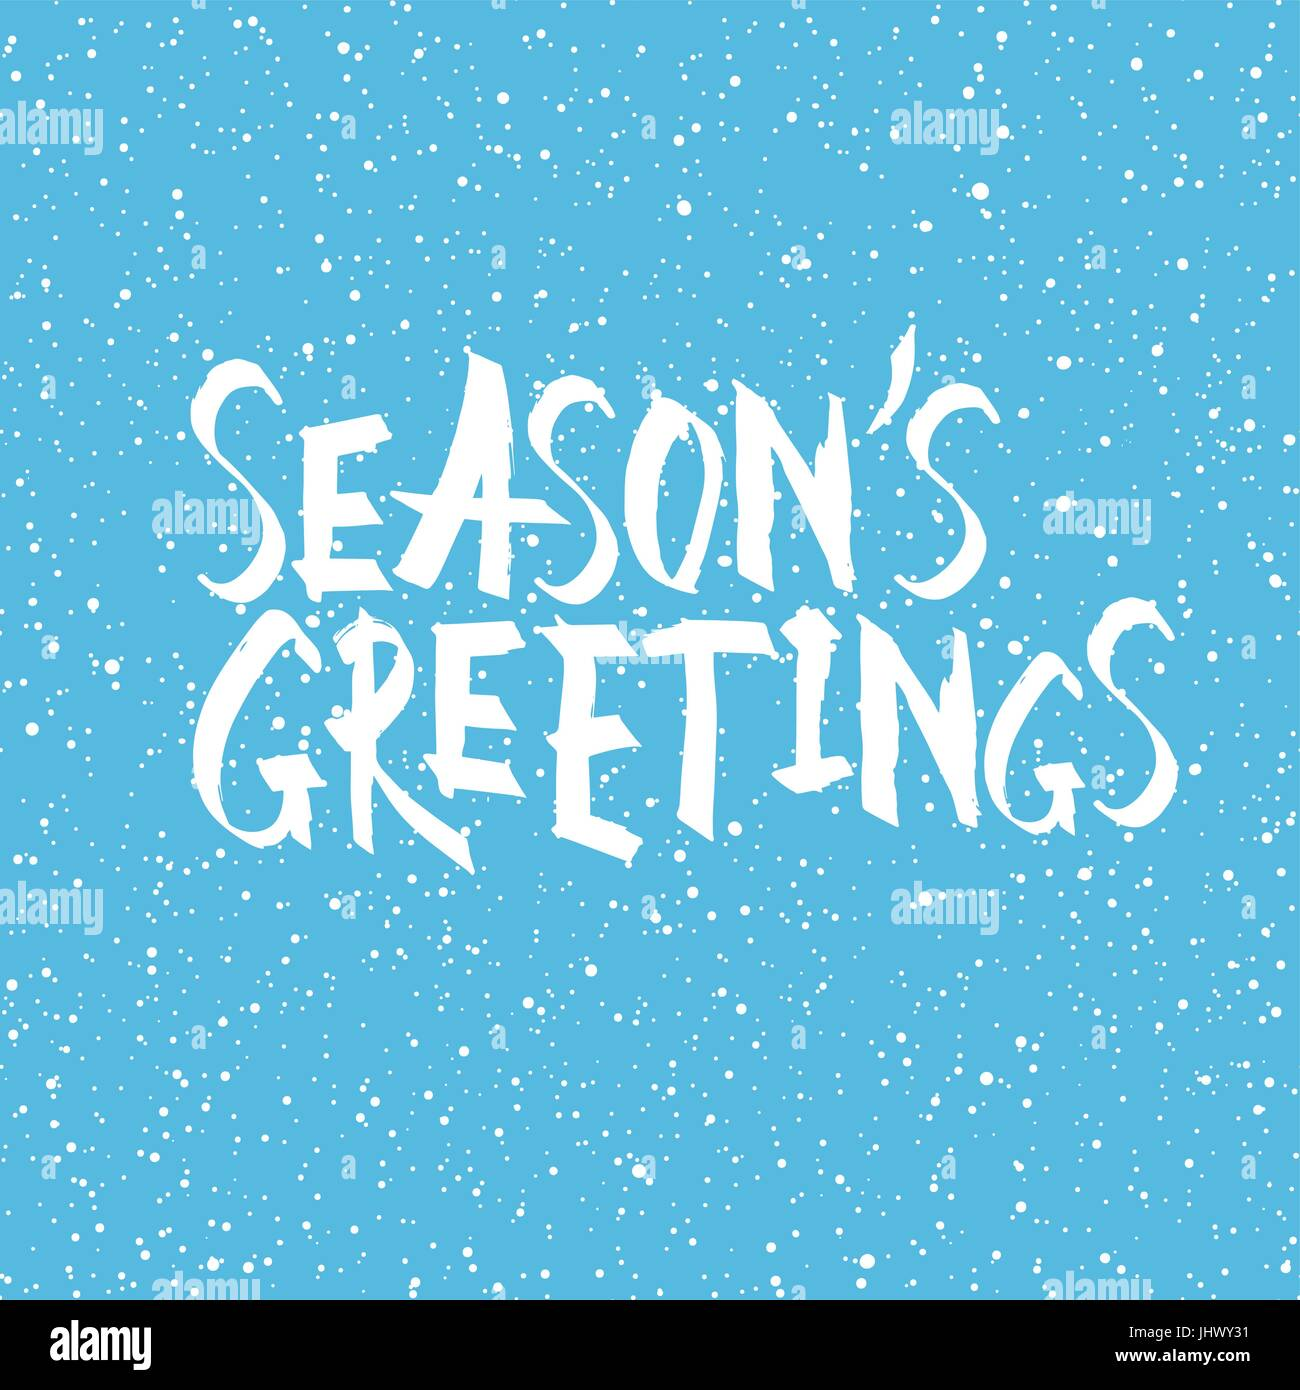 seasons greetings christmas and new year holiday phrase